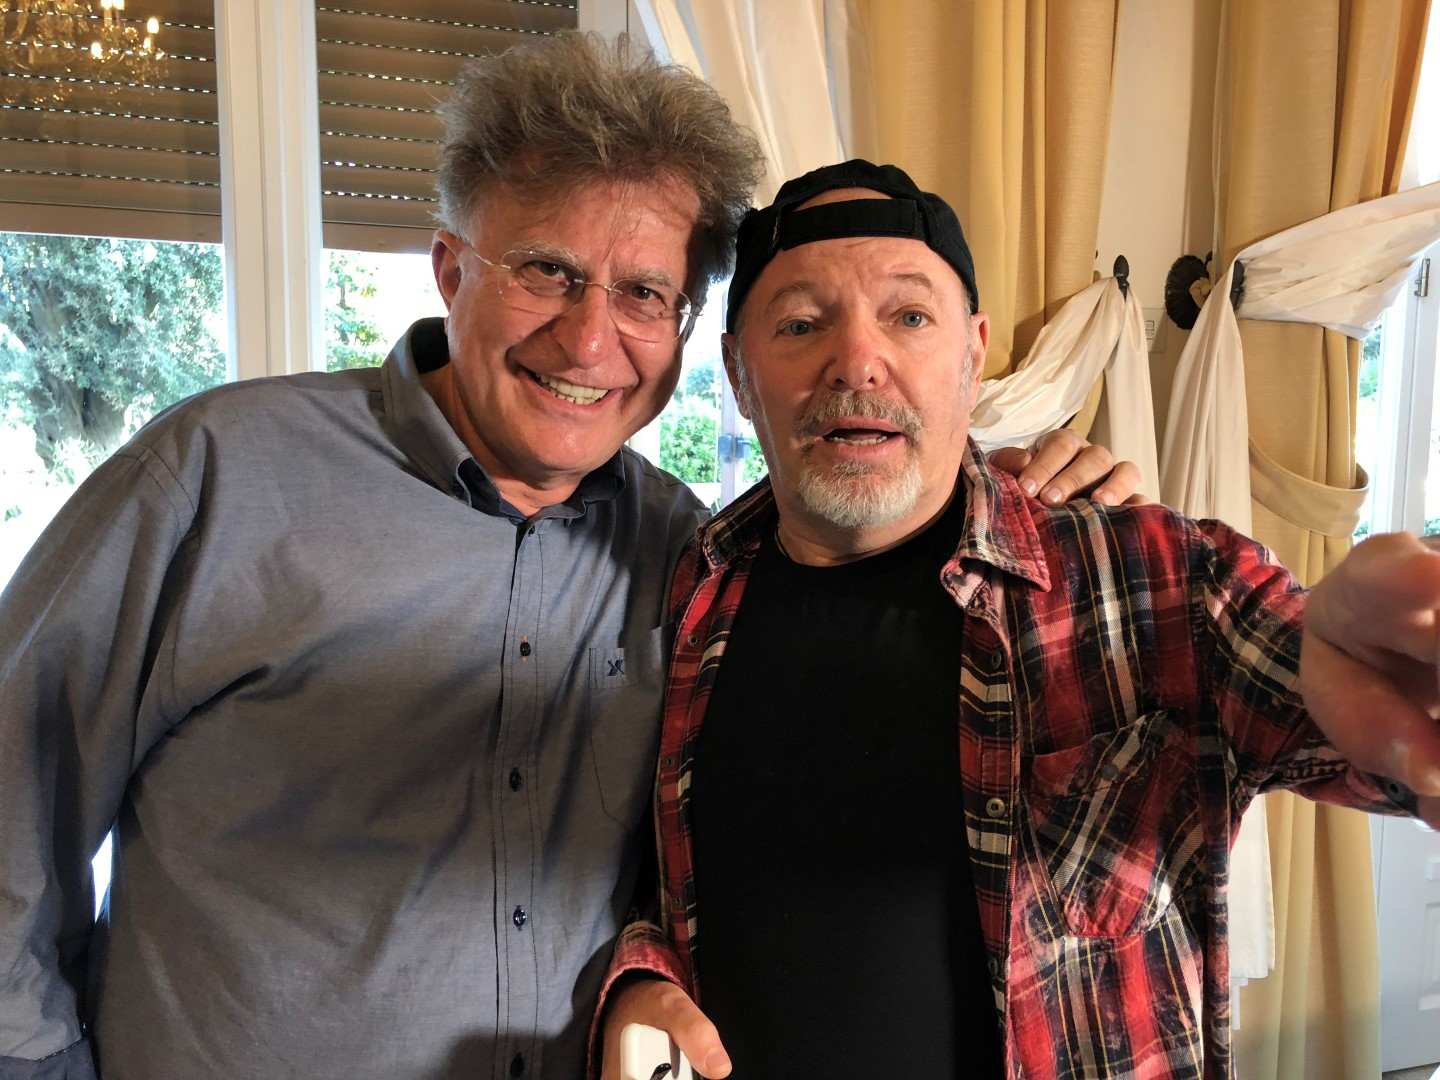 Vasco Rossi Rimini Red Ronnie Ha Incontrato Vasco Rossi A Rimini